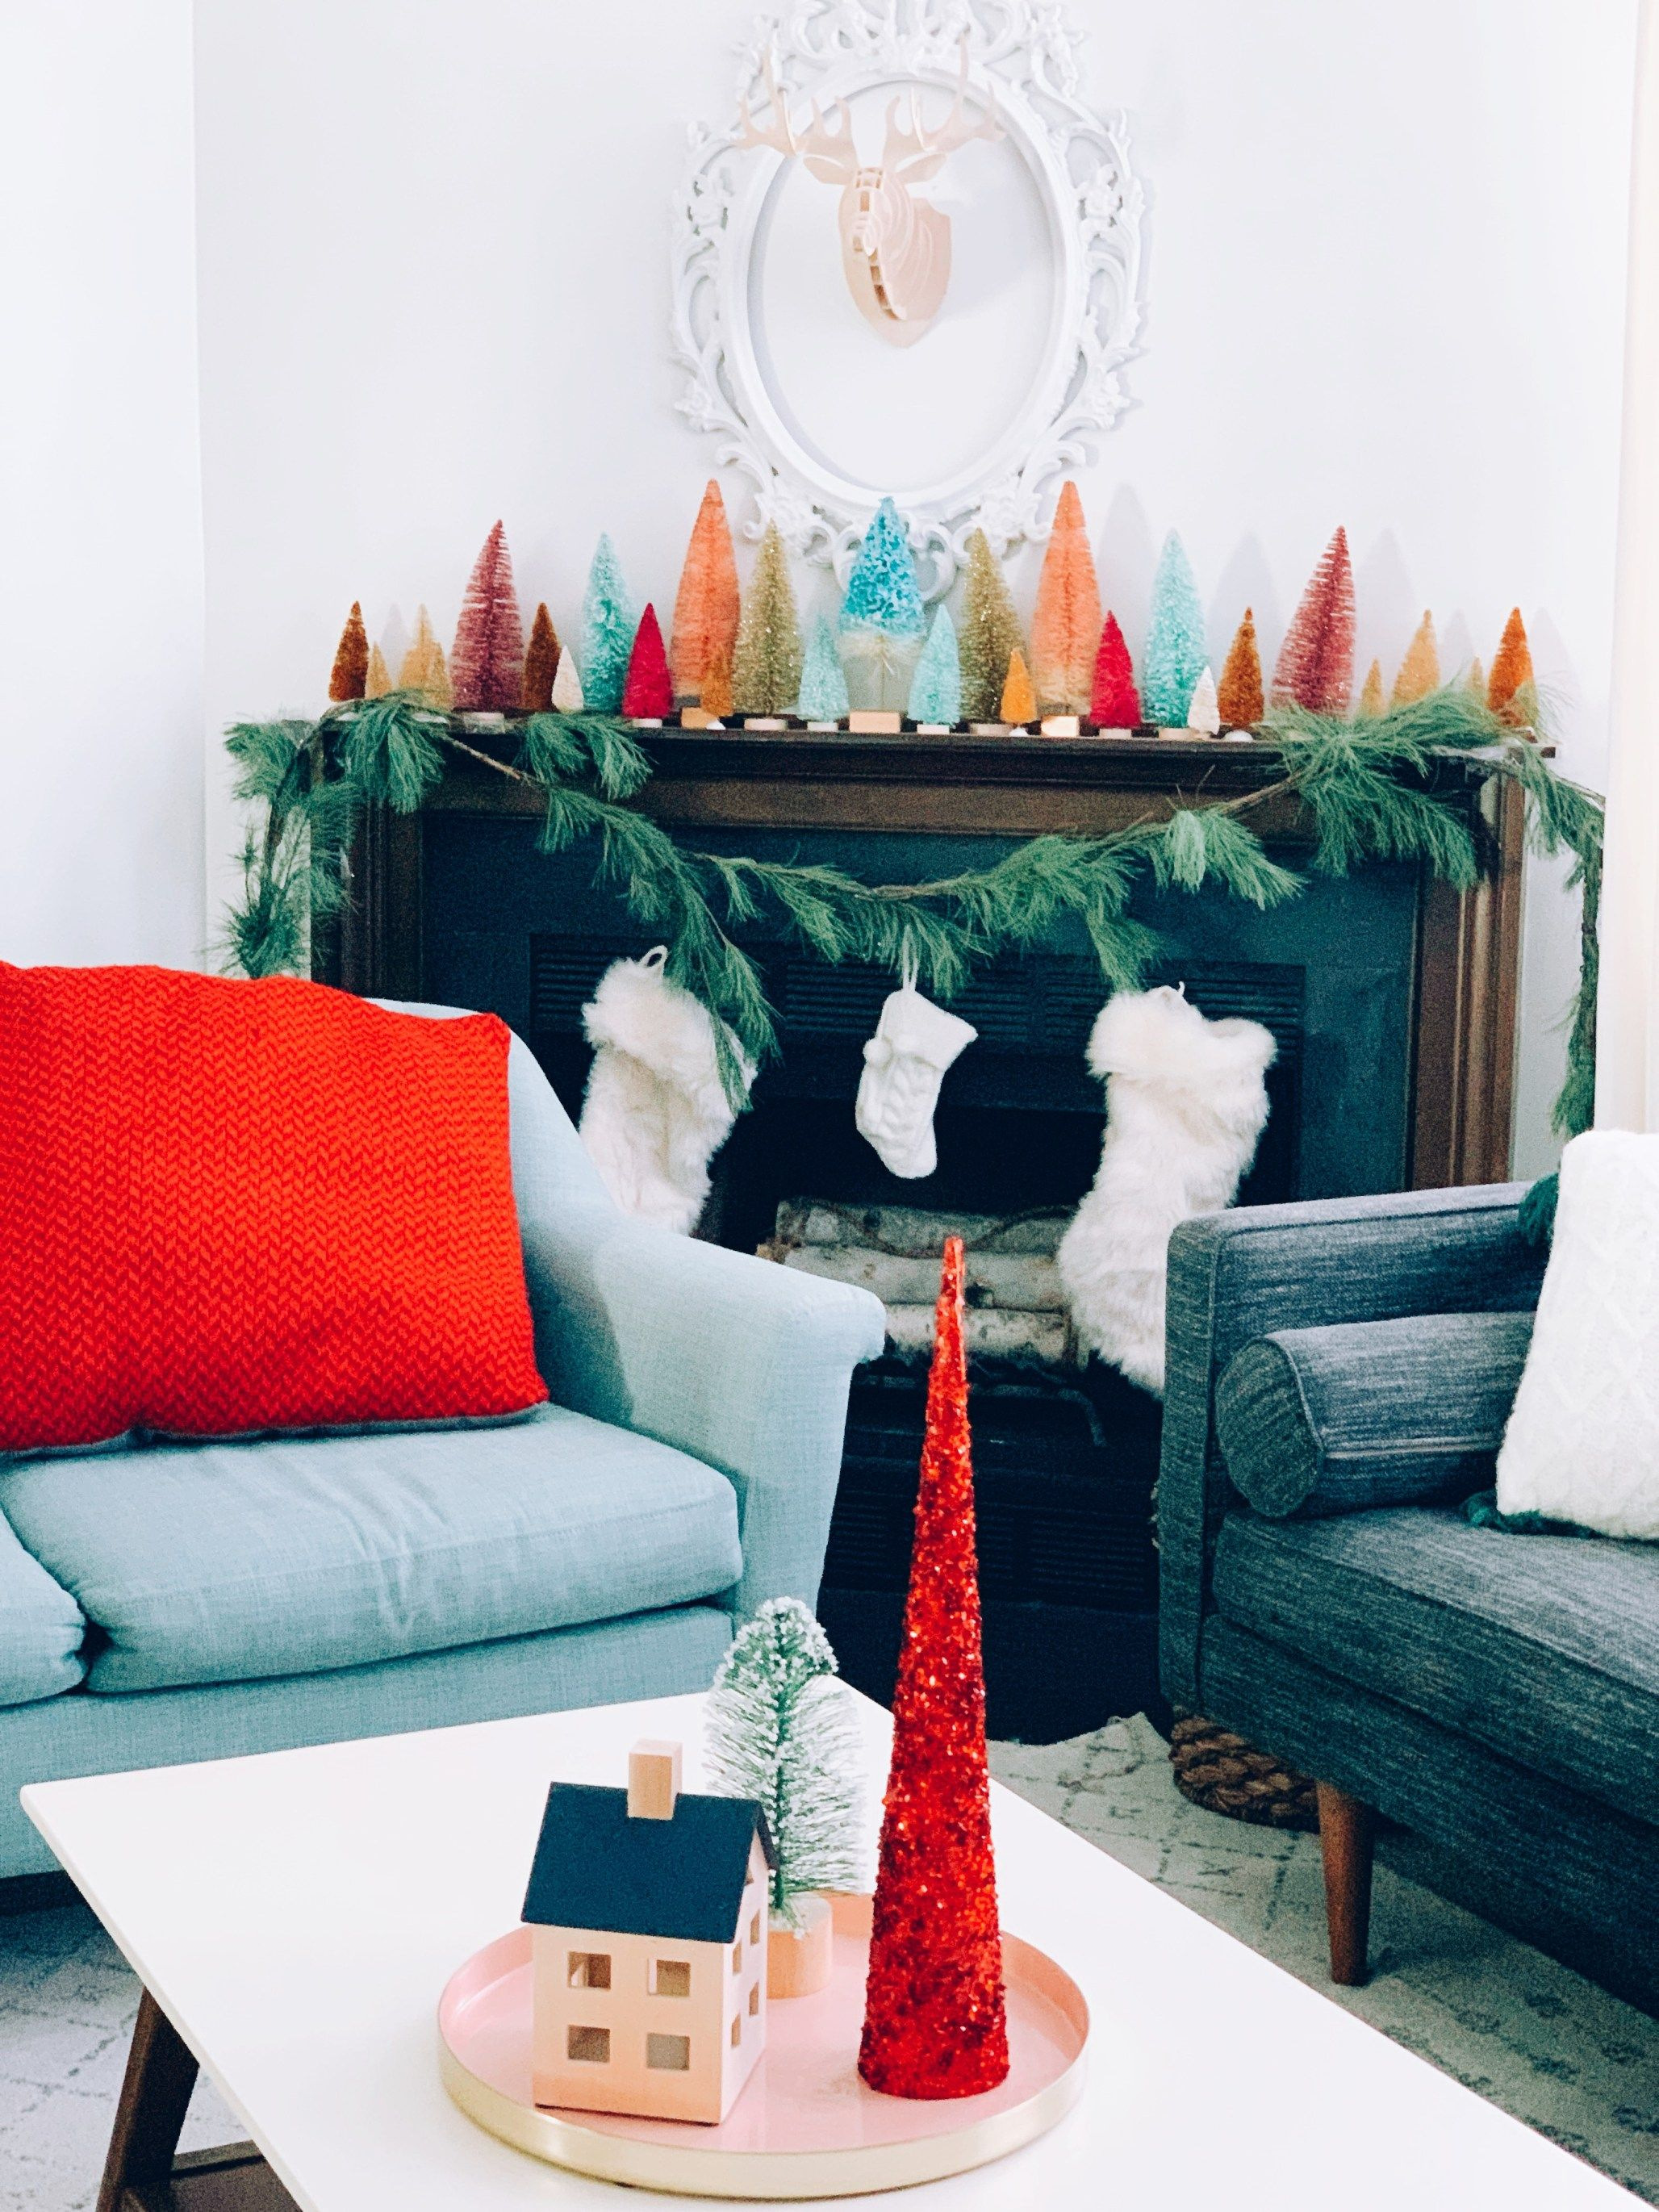 Christmas home tour! | A Joyful Riot #Christmas #WhimsicalChristmas #ChristmasHome